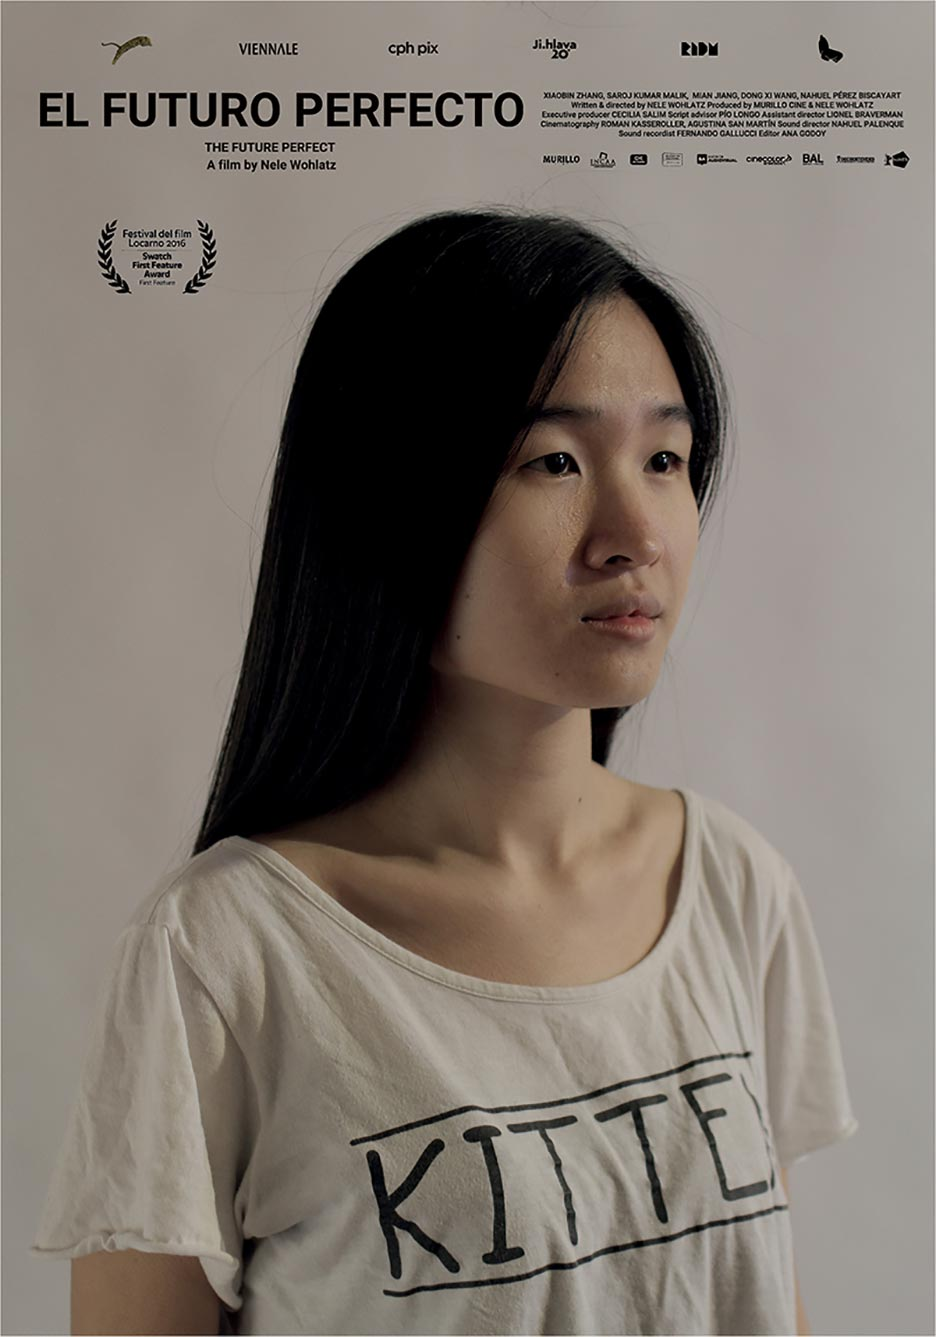 - EL FUTURO PERFECTO, 2016 (Argentina)Xiaobin, a young Chinese immigrant in Buenos Aires, tries to find her own way through the jungle of contradictions in her new everyday life.This film focuses on the integration experience of Xiaobin, as she learns a new language, meets people outside the tight Chinese community and gets acquainted with the new society that has become her home.Director: Nele WohlatzLength: 1 h 5 minWhere and when: Deptford Cinema, Saturday 2 December, 16:00 - screened alongside Toprak and ExotiquePrice and tickets: £4.50-6, buy a ticket hereWe are able to offer you this film thanks to the support of MUBI.